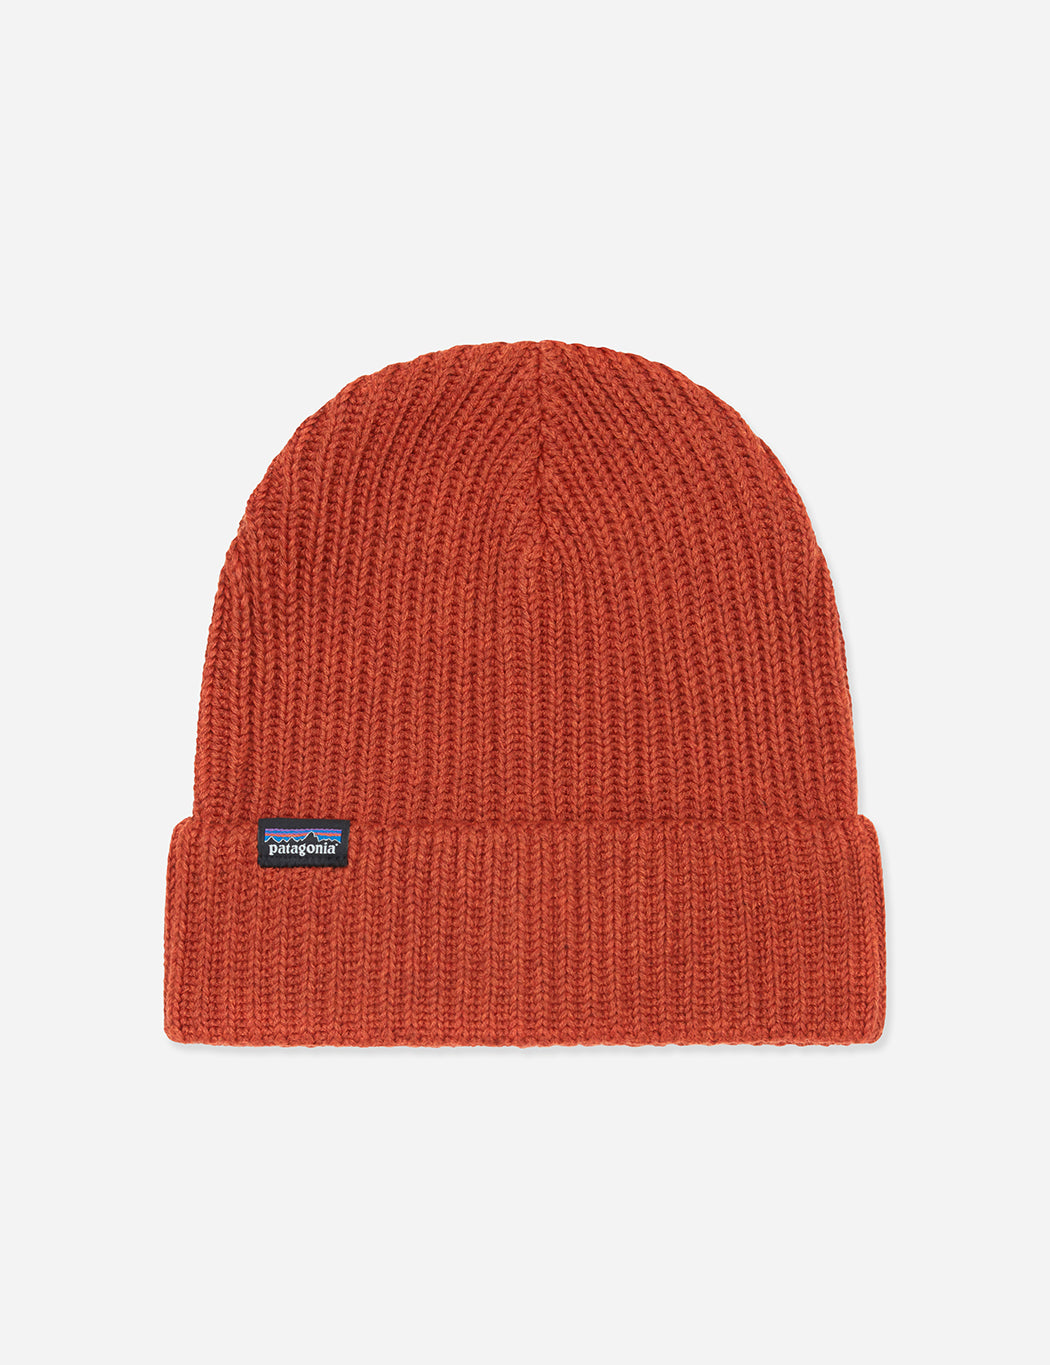 68036759ca7 Patagonia Fisherman s Rolled Beanie Hat - Copper Ore